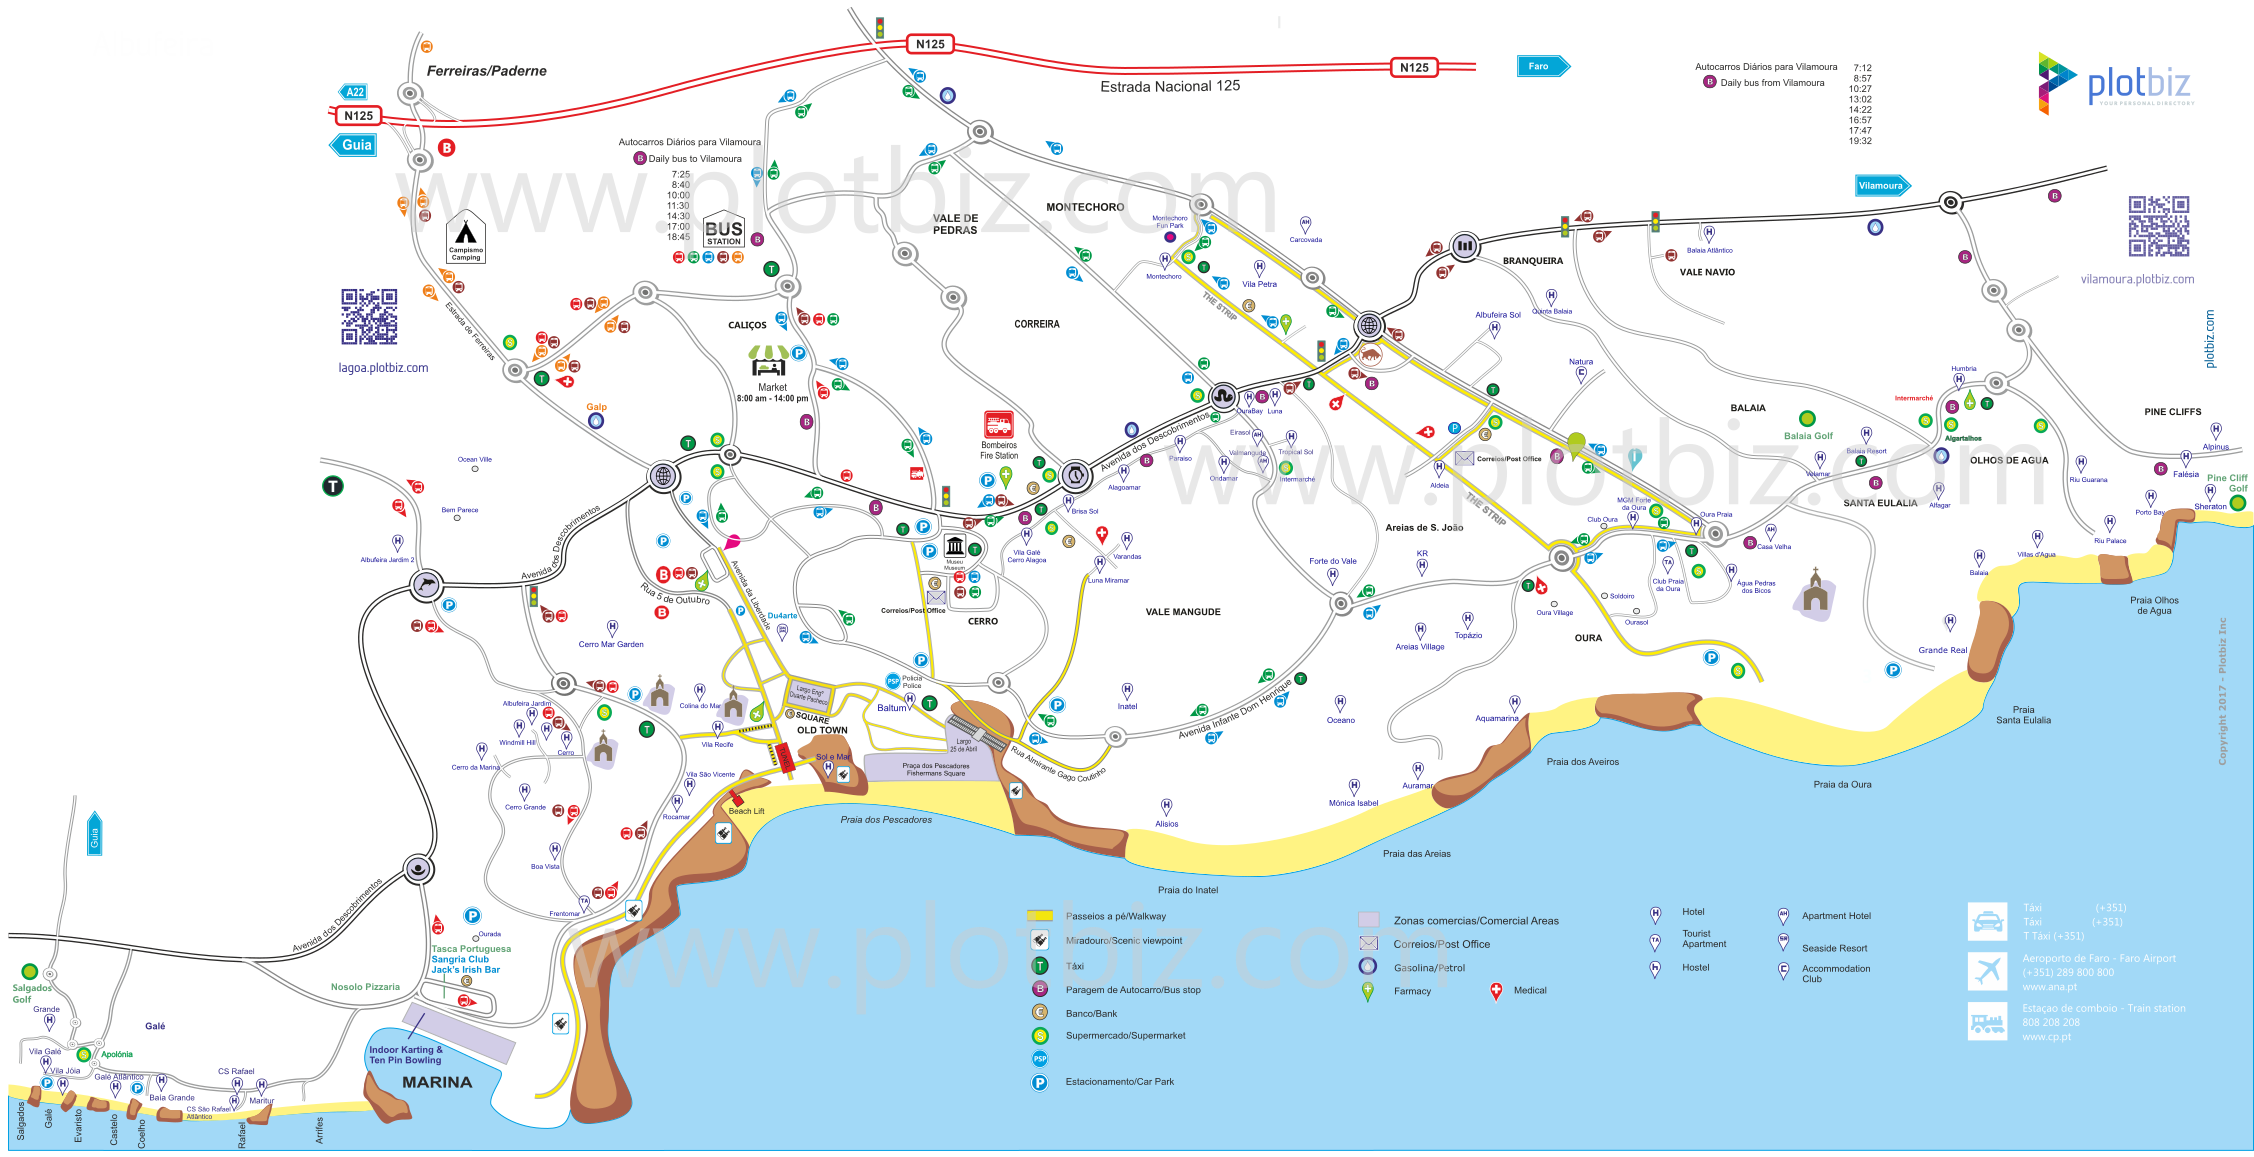 Map Of Albufeira Albufeira   Plotbiz Maps & Info